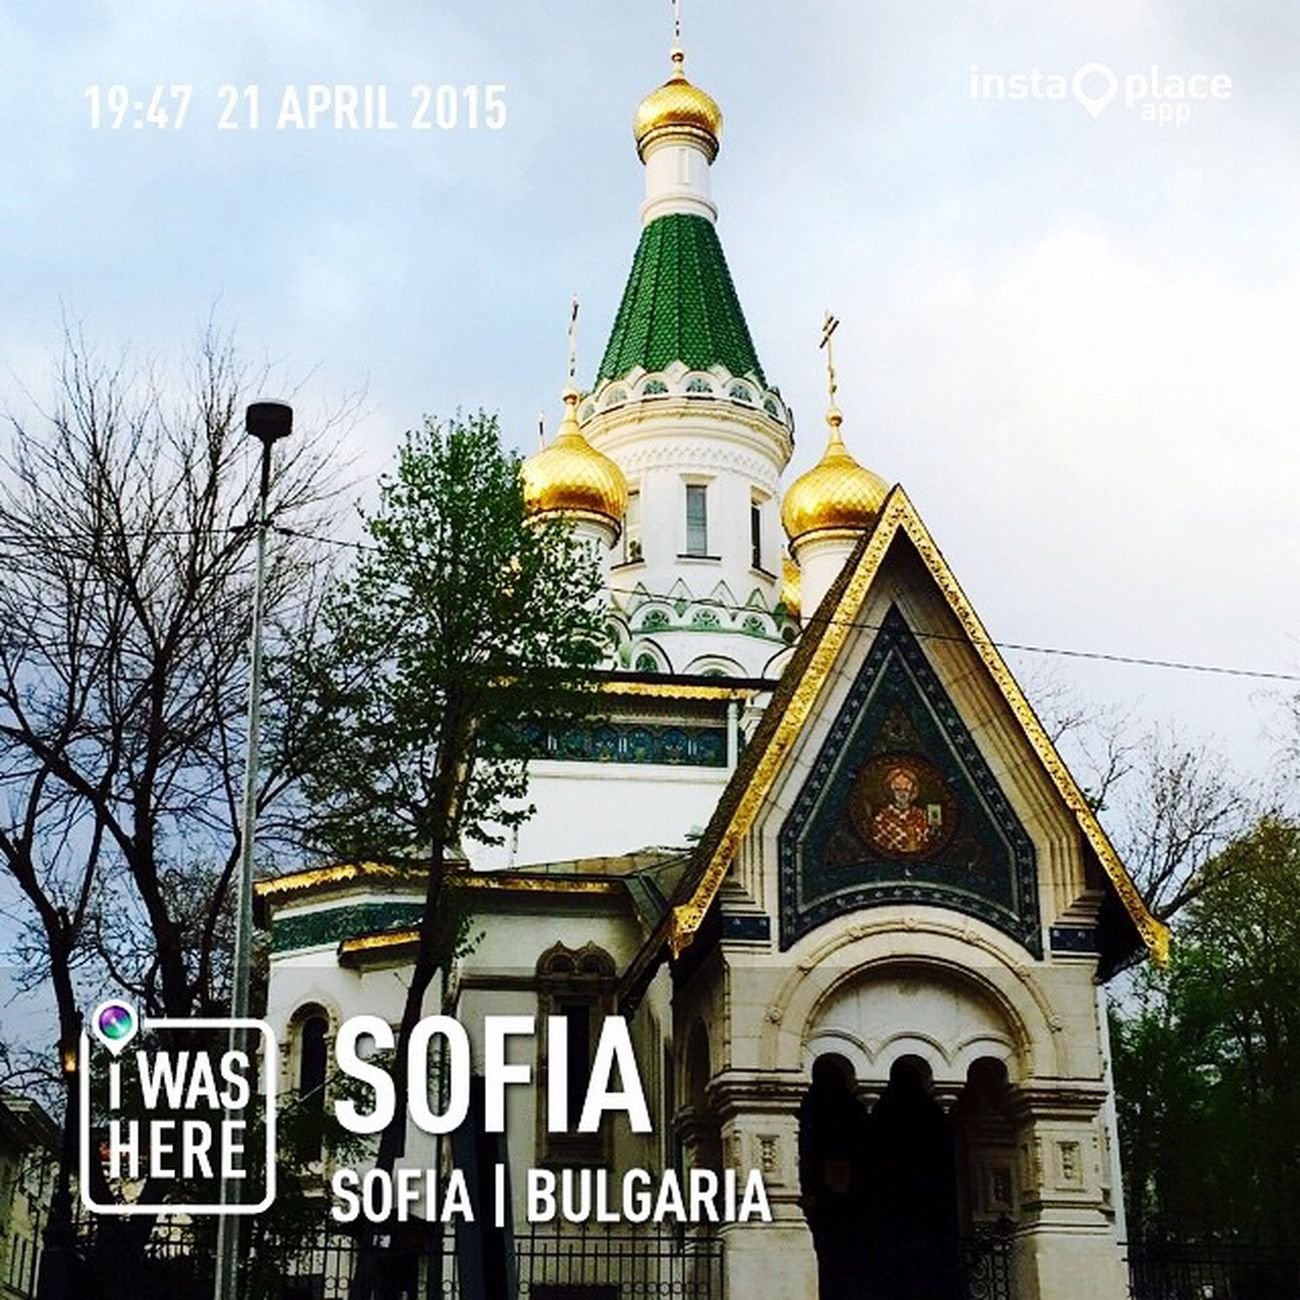 My Bulgaria Travel Series : Sofia, Bulgaria The Russian Church Travel Photography Eye Em Around The World Solotraveler By Myself Balkans Adventure Taking Photos Enjoying Every Moment In Foreign Land Life Is Beautiful For My Own Photo Journal Lizara ❤️ - Never design your character like a garden where anyone can walk. Design your character like the sky where everyone desire to reach ❤️✨👌